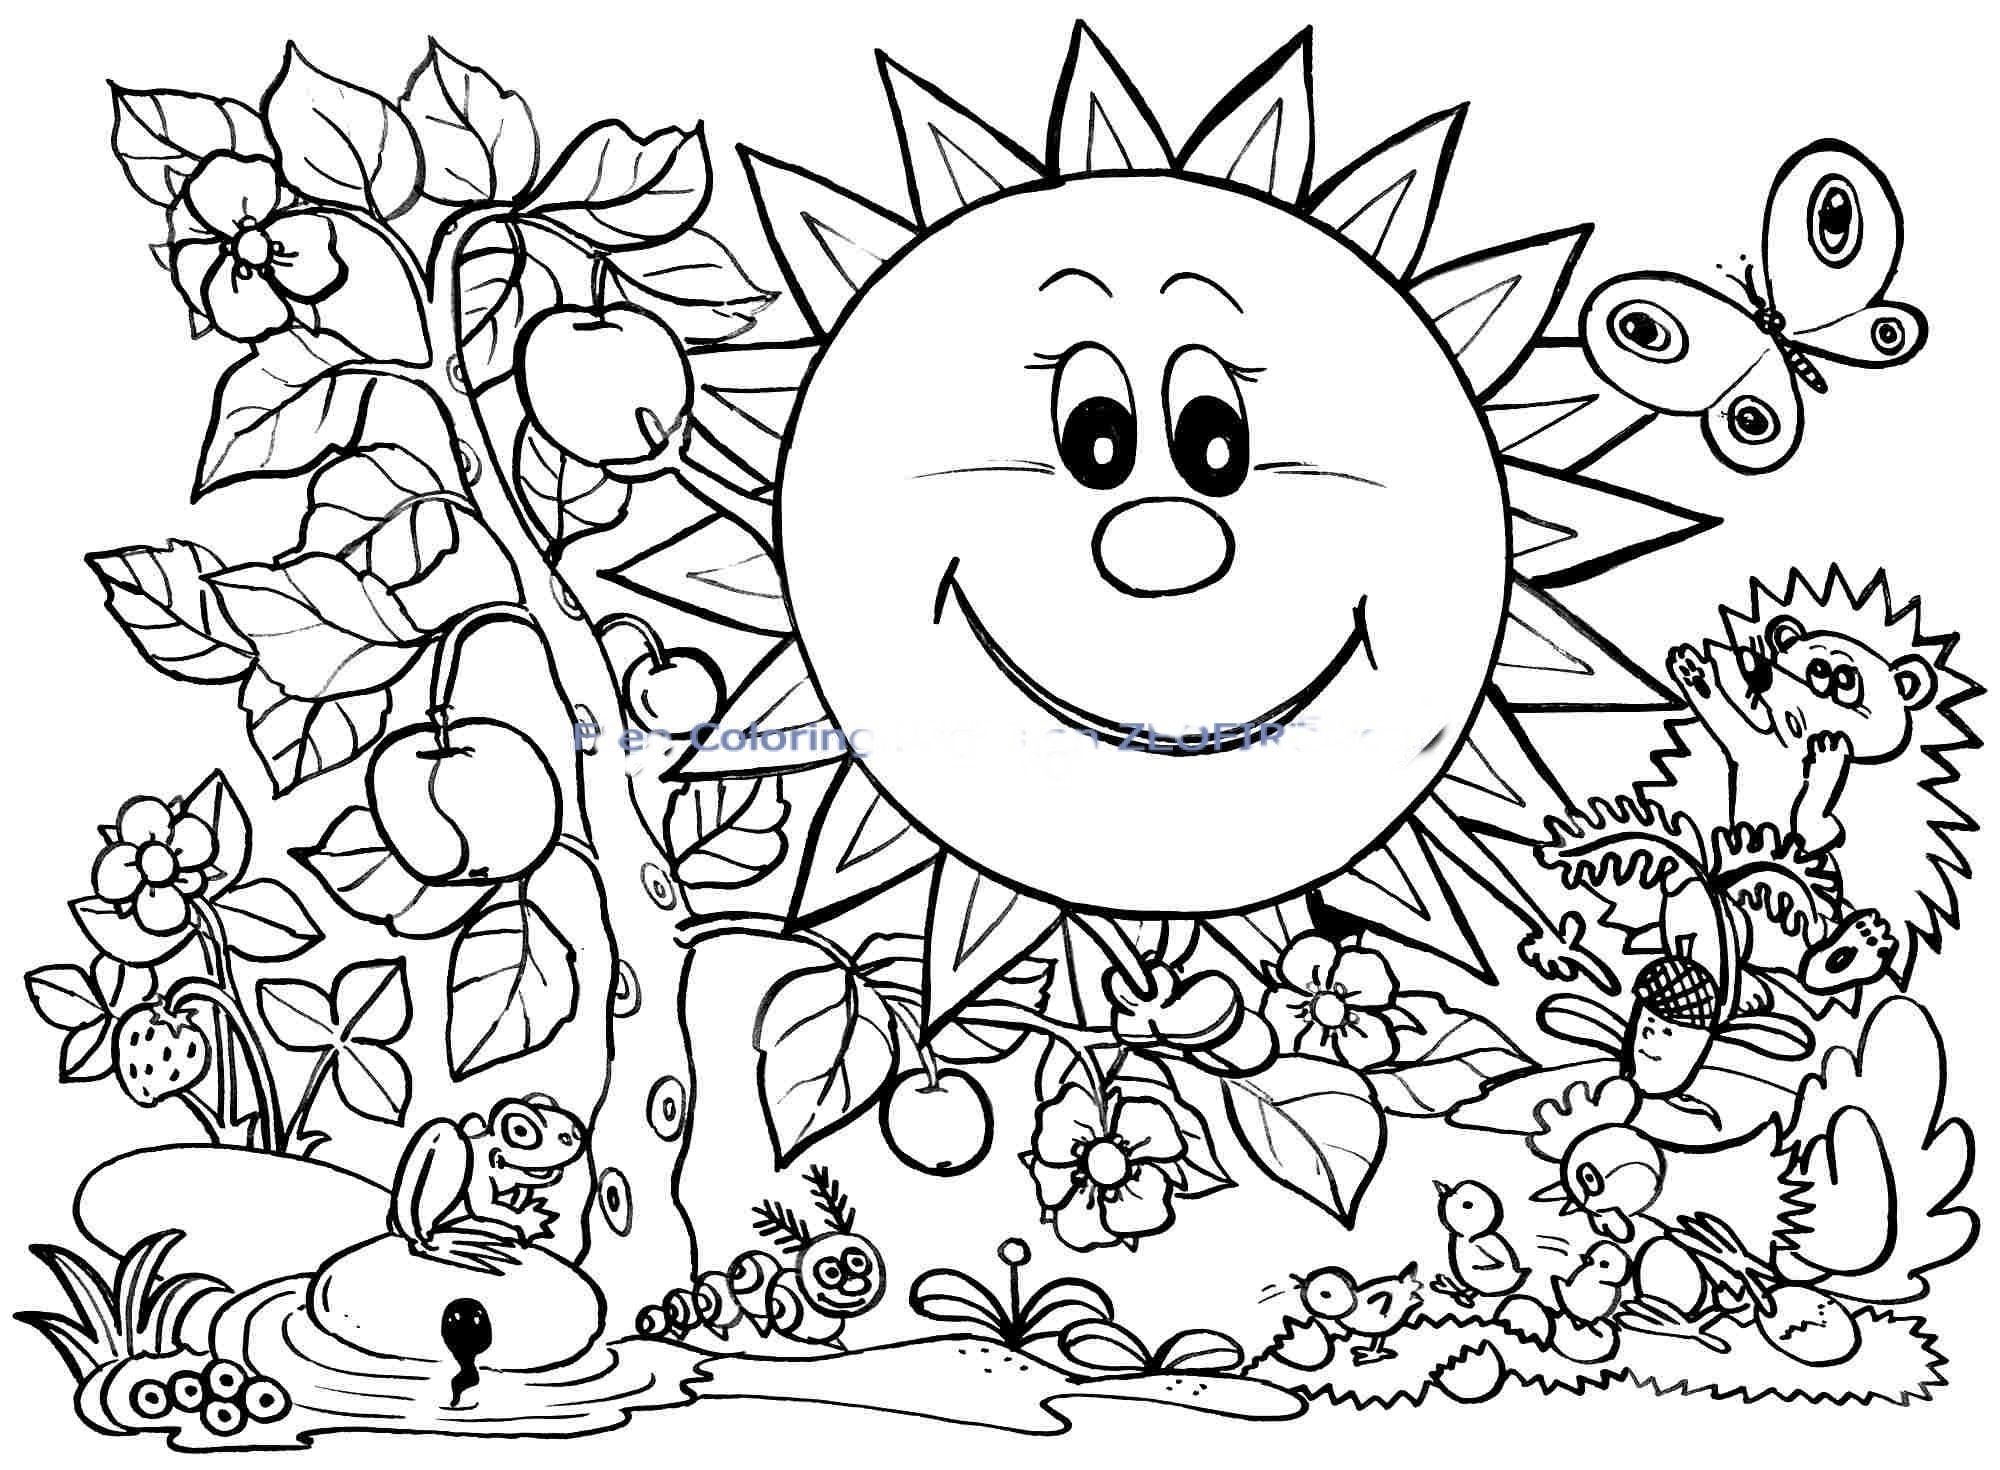 spring break coloring pages spring break coloring page wecoloringpagecom spring coloring break pages